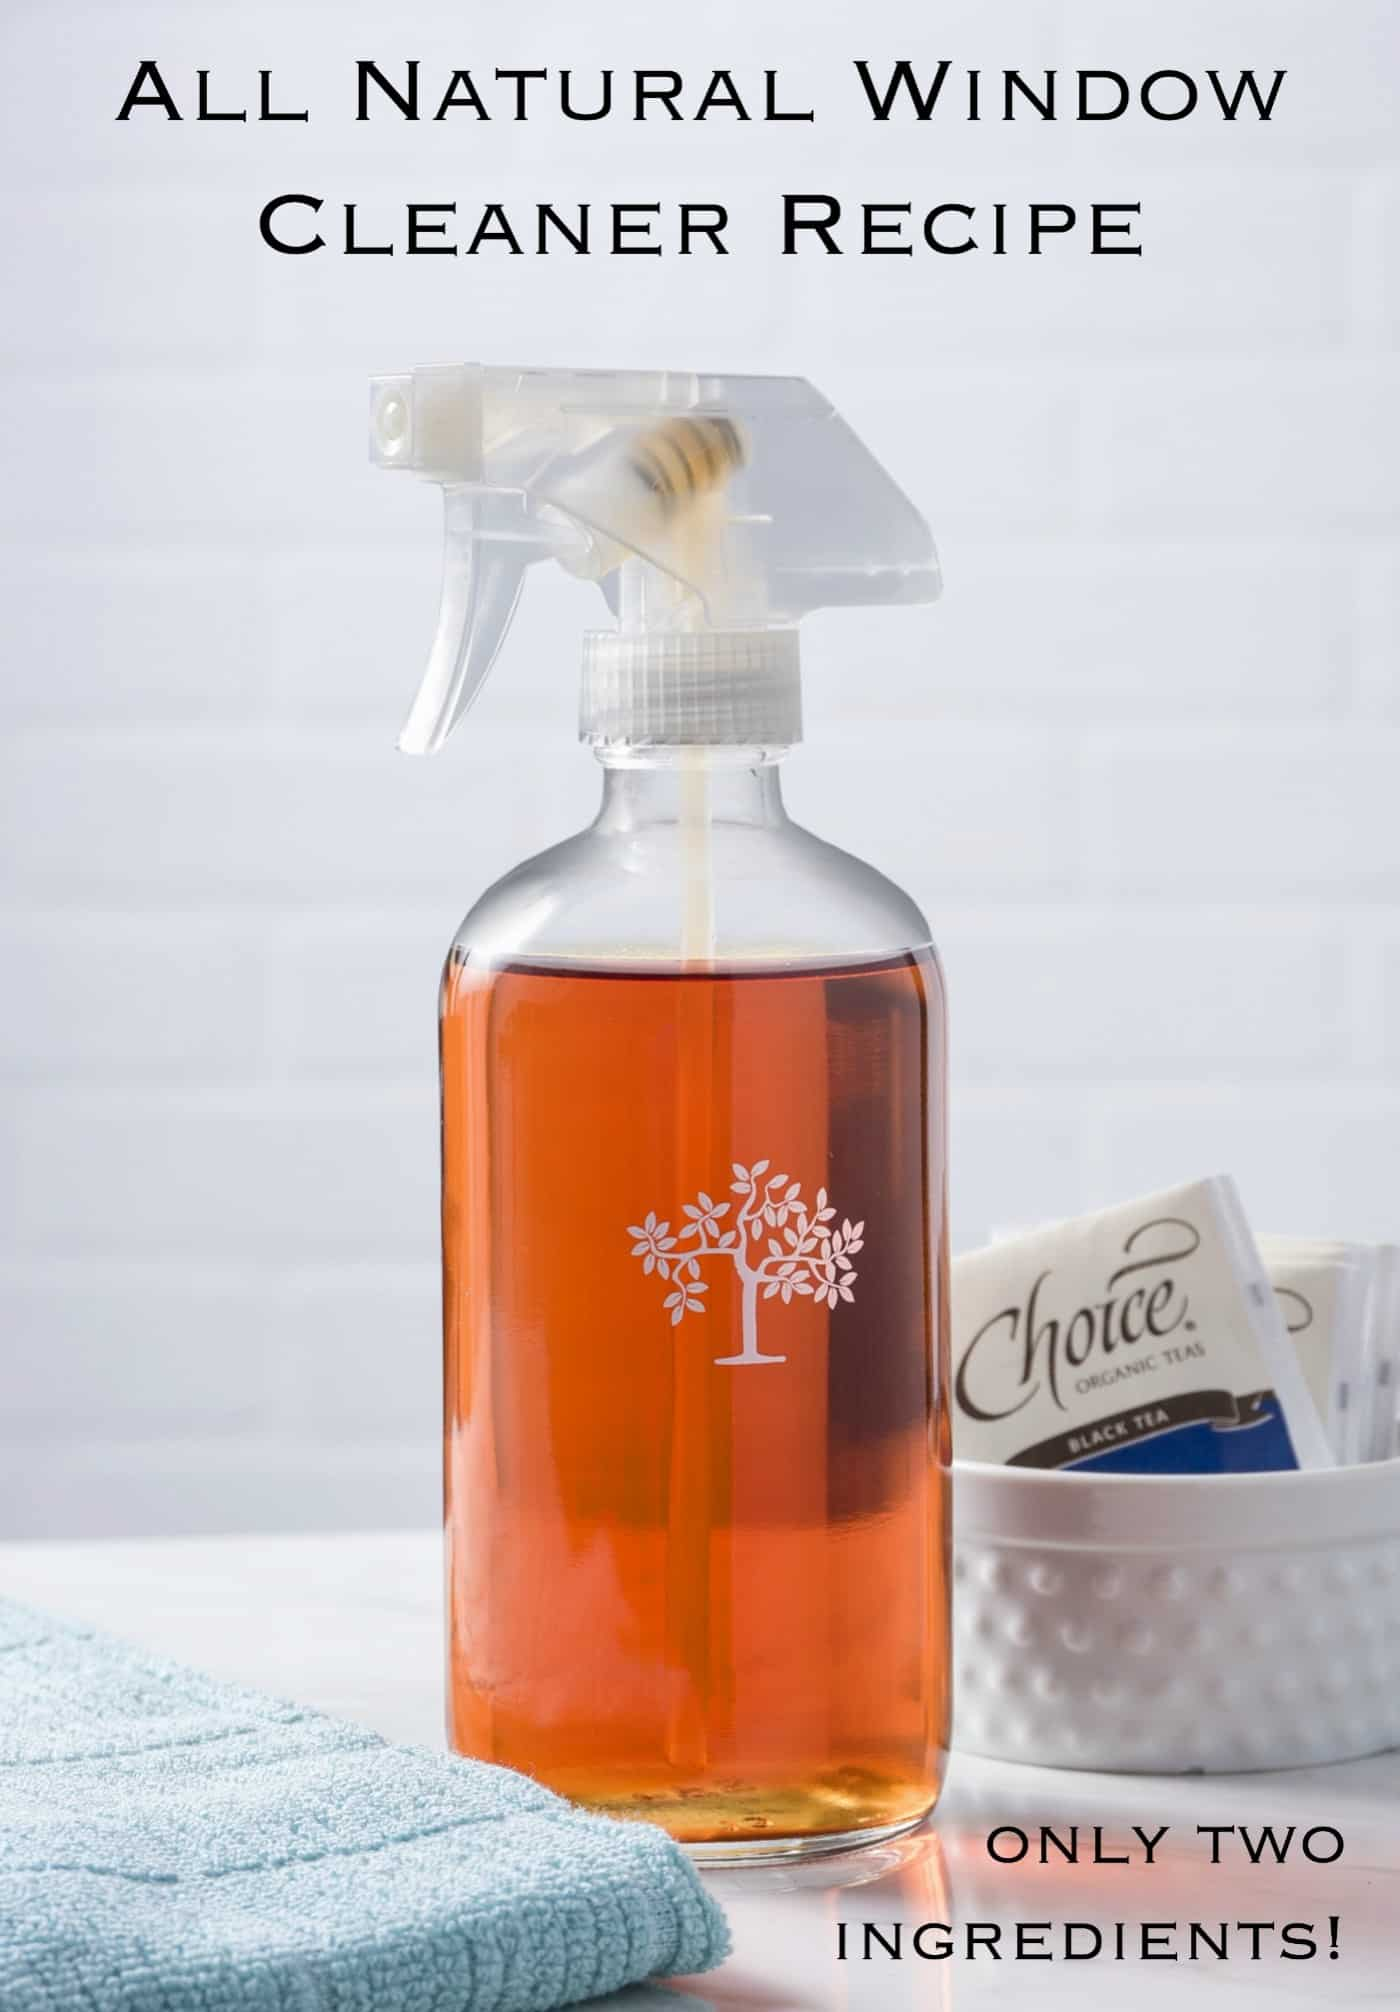 If you get headaches from cleaners like I do, you'll want to try this all natural window cleaner recipe. Only two ingredients, and smells great!